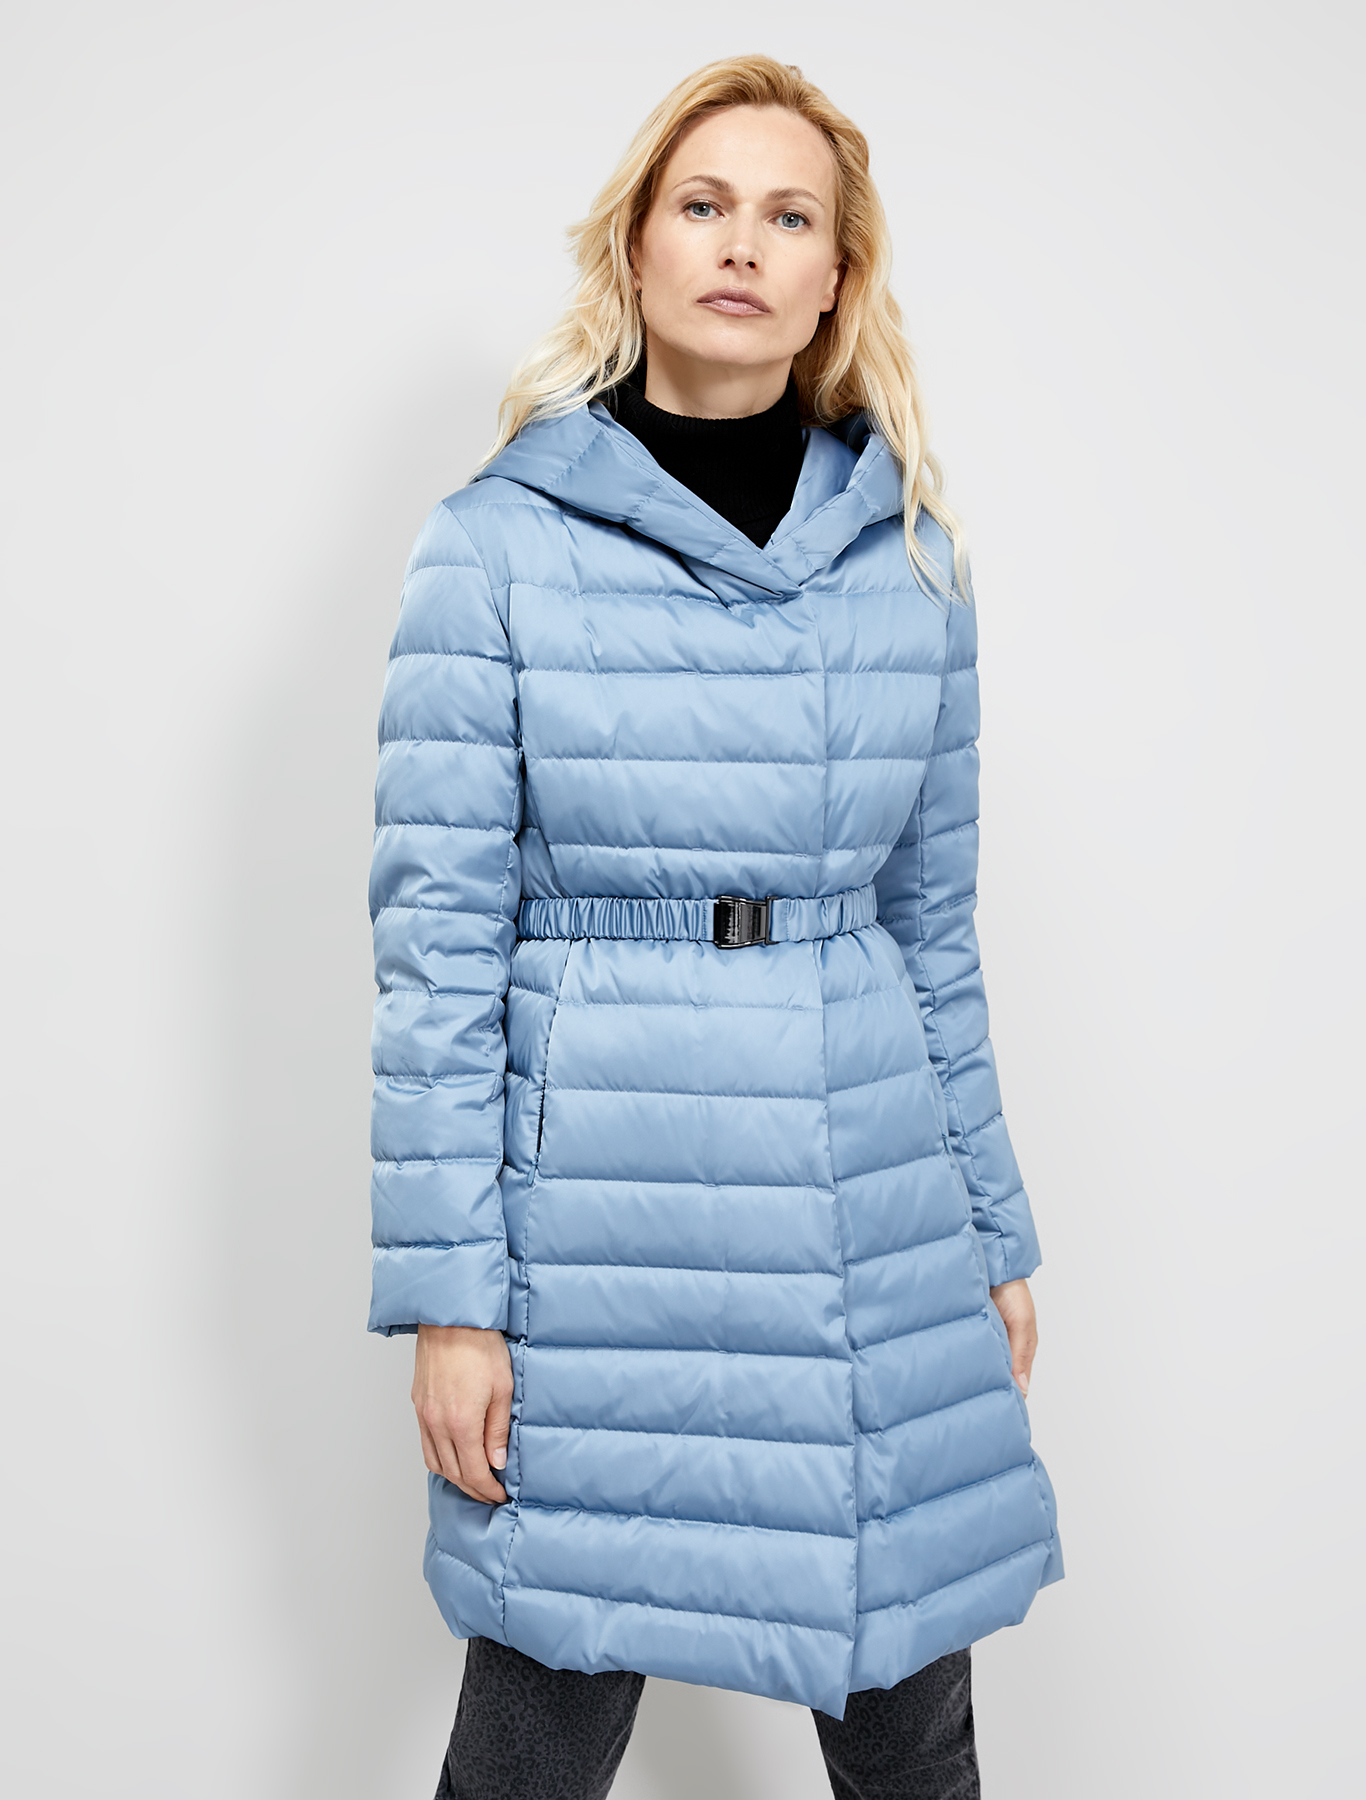 Technical satin down jacket - air force blue - pennyblack